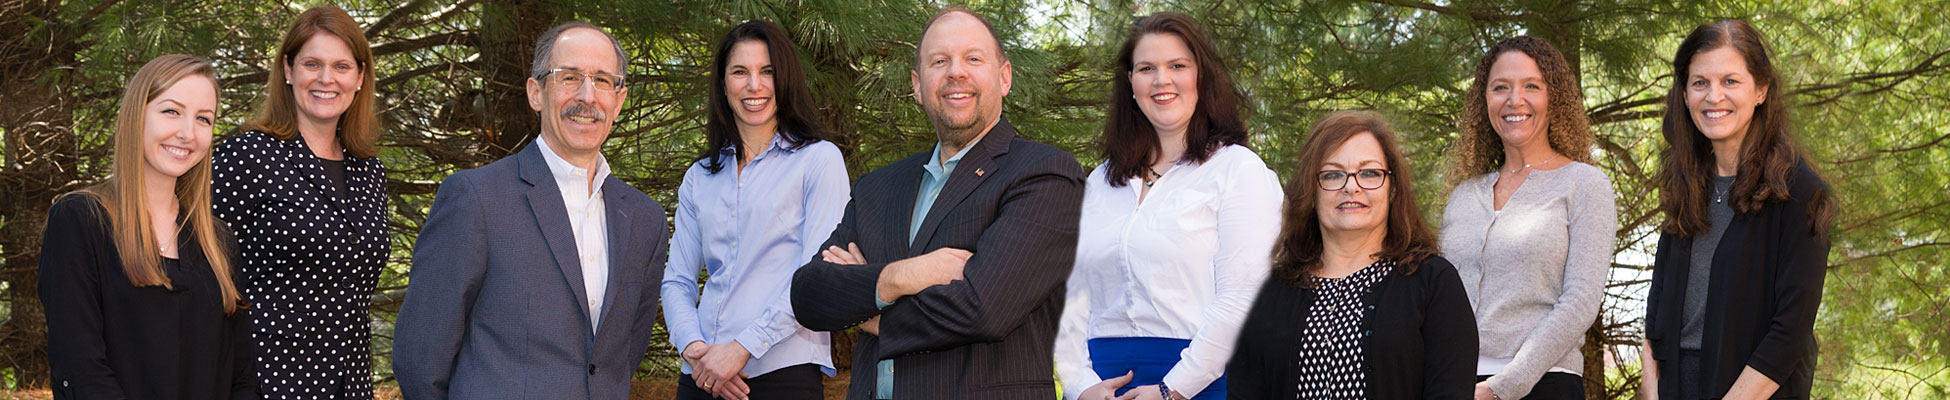 Halpin Law Firm Group Shot Real estate attorneys in Howard County, Anne Arundel County, Montgomery County, Carroll County, Baltimore County